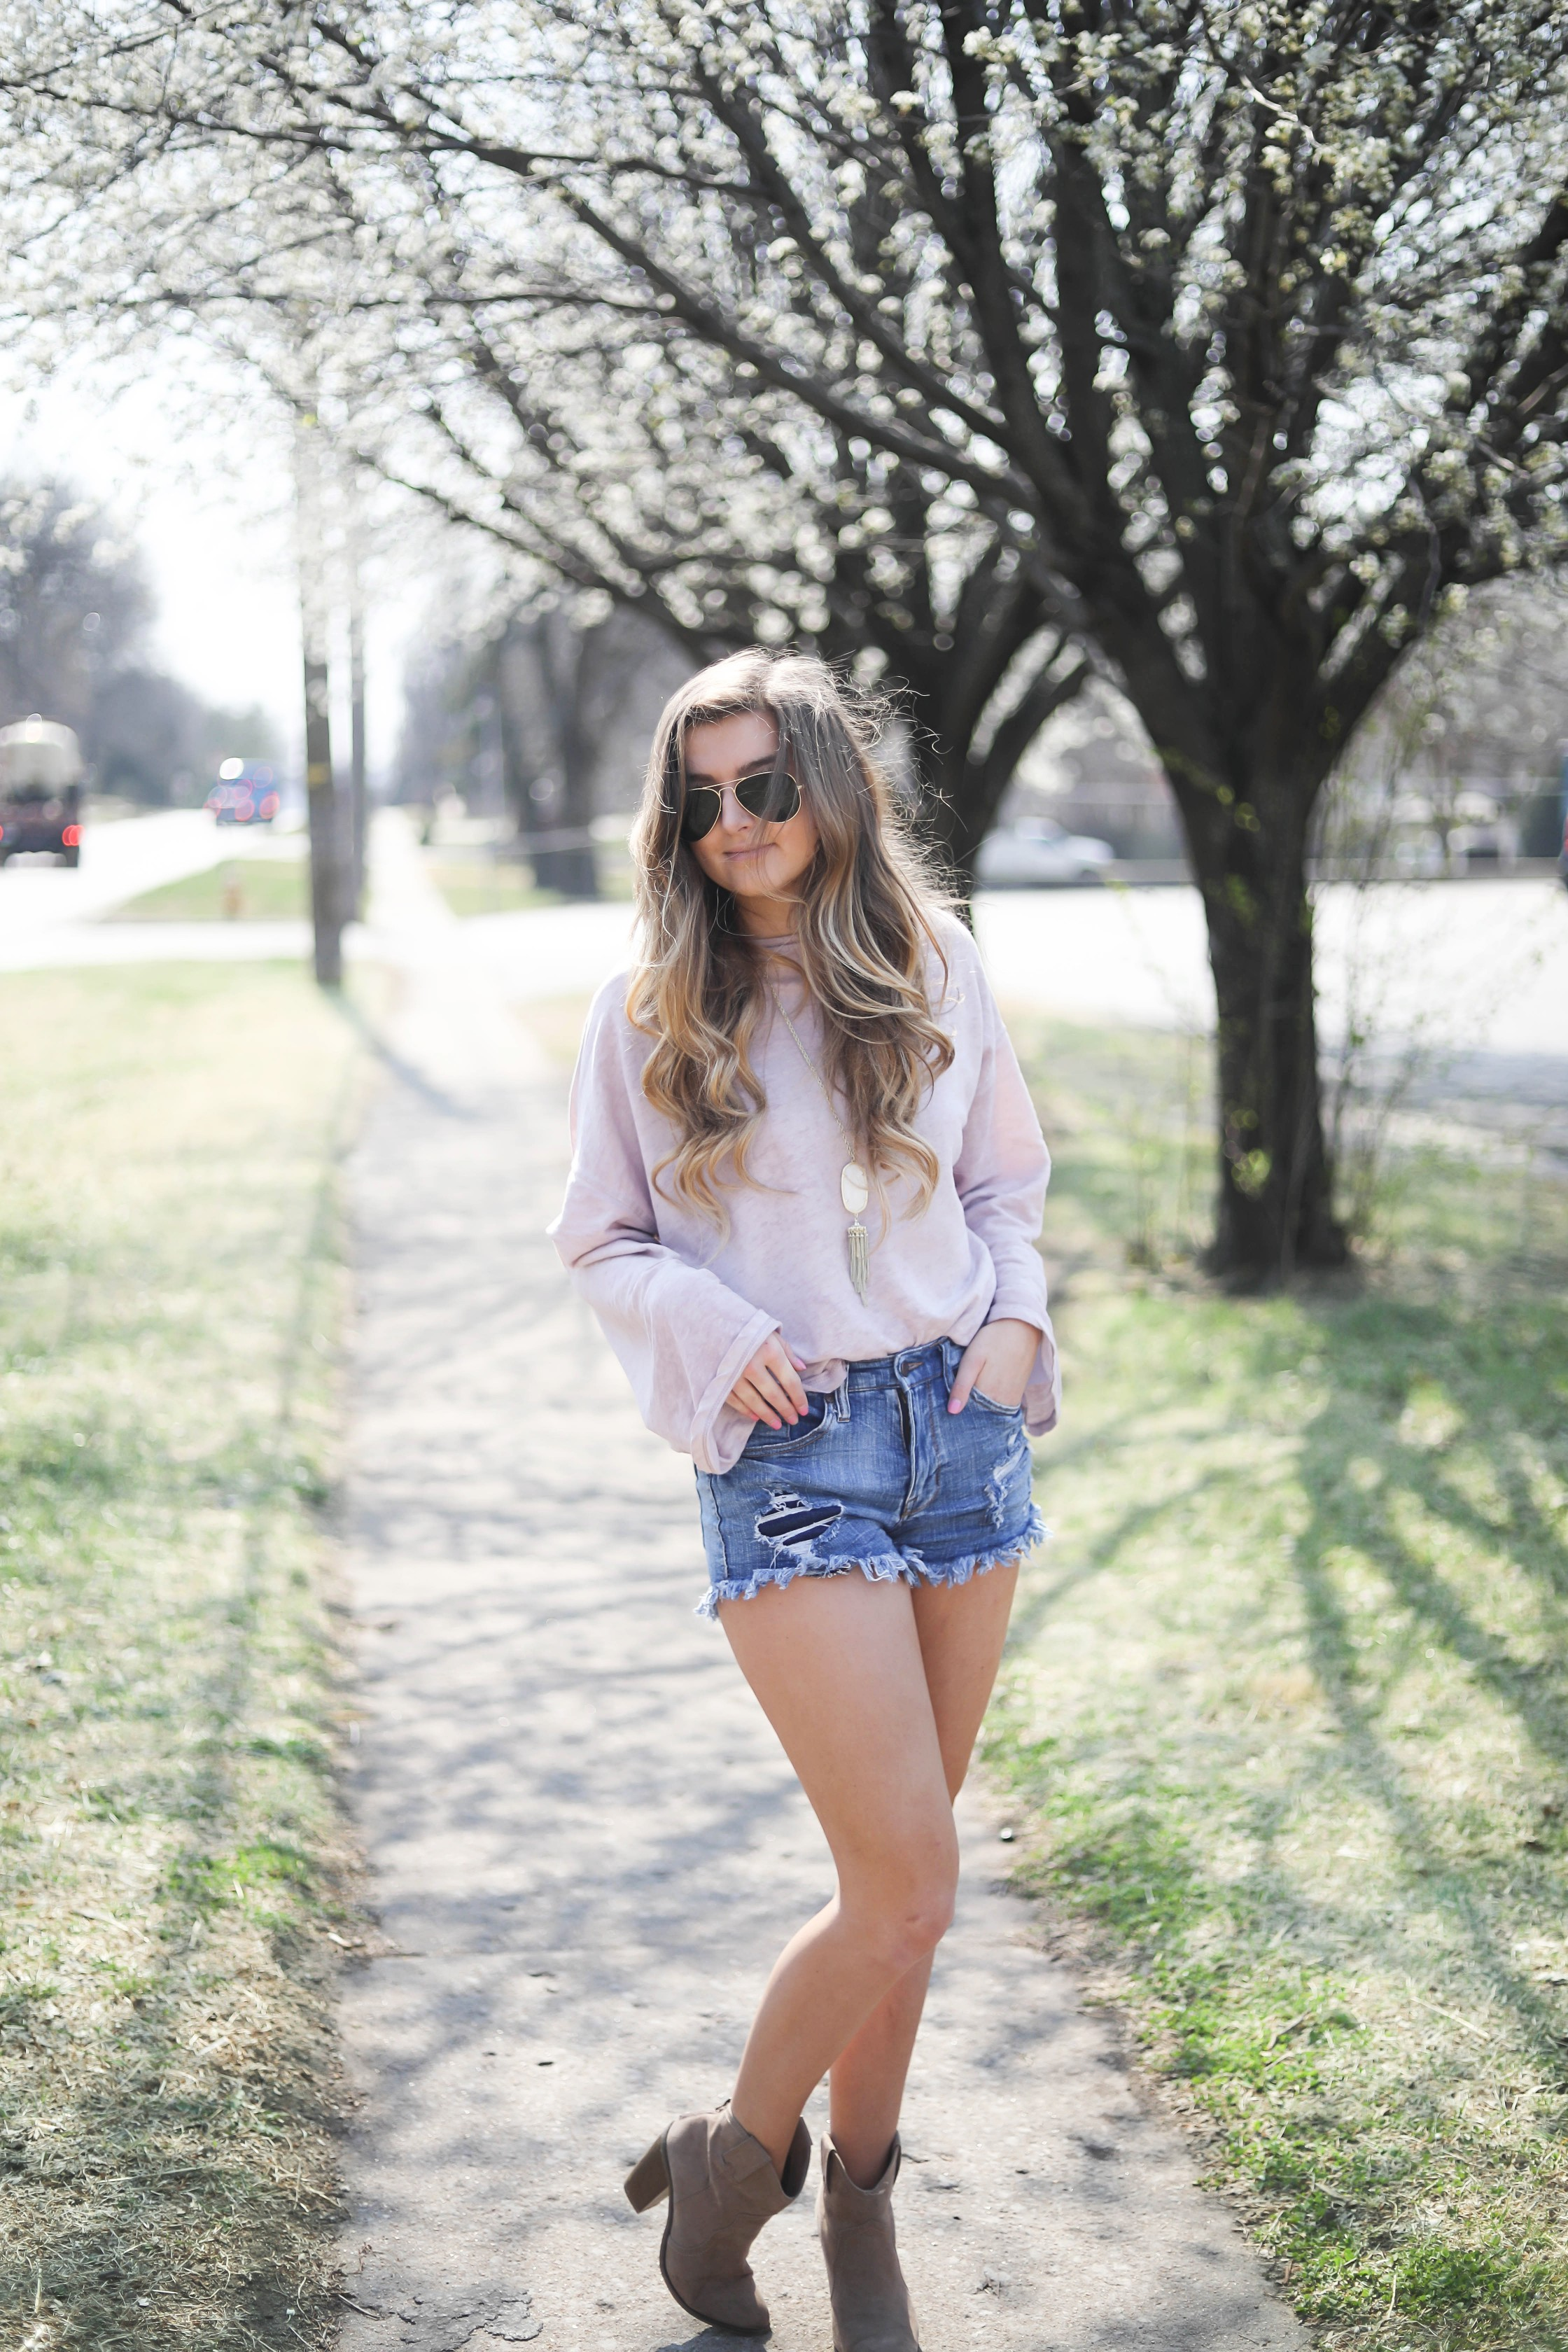 Spring outfit! You can tell it's officially spring when the trees start to bloom! I love this cozy pink top with ripped jeans. I paired them with my favorite booties and white kendra Scott necklace! By Lauren Lindmark dailydoseofcharm.com daily dose of charm